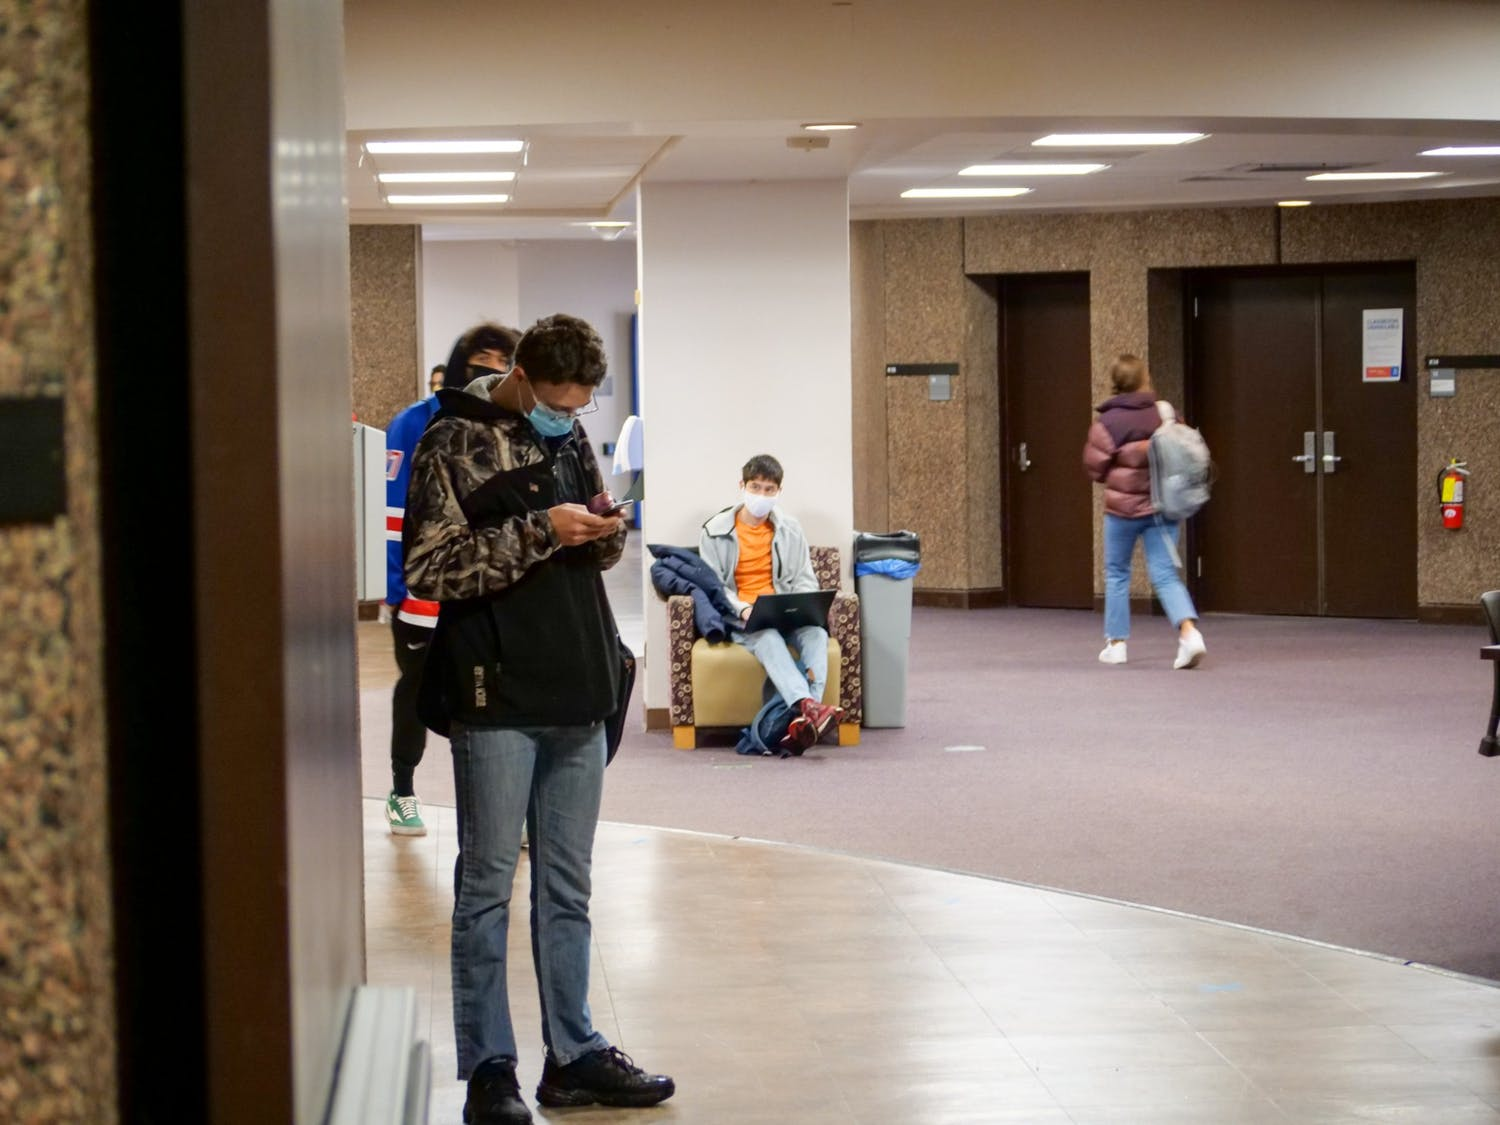 More than 125 students have signed a petition calling for periodic reading days during the spring semester.